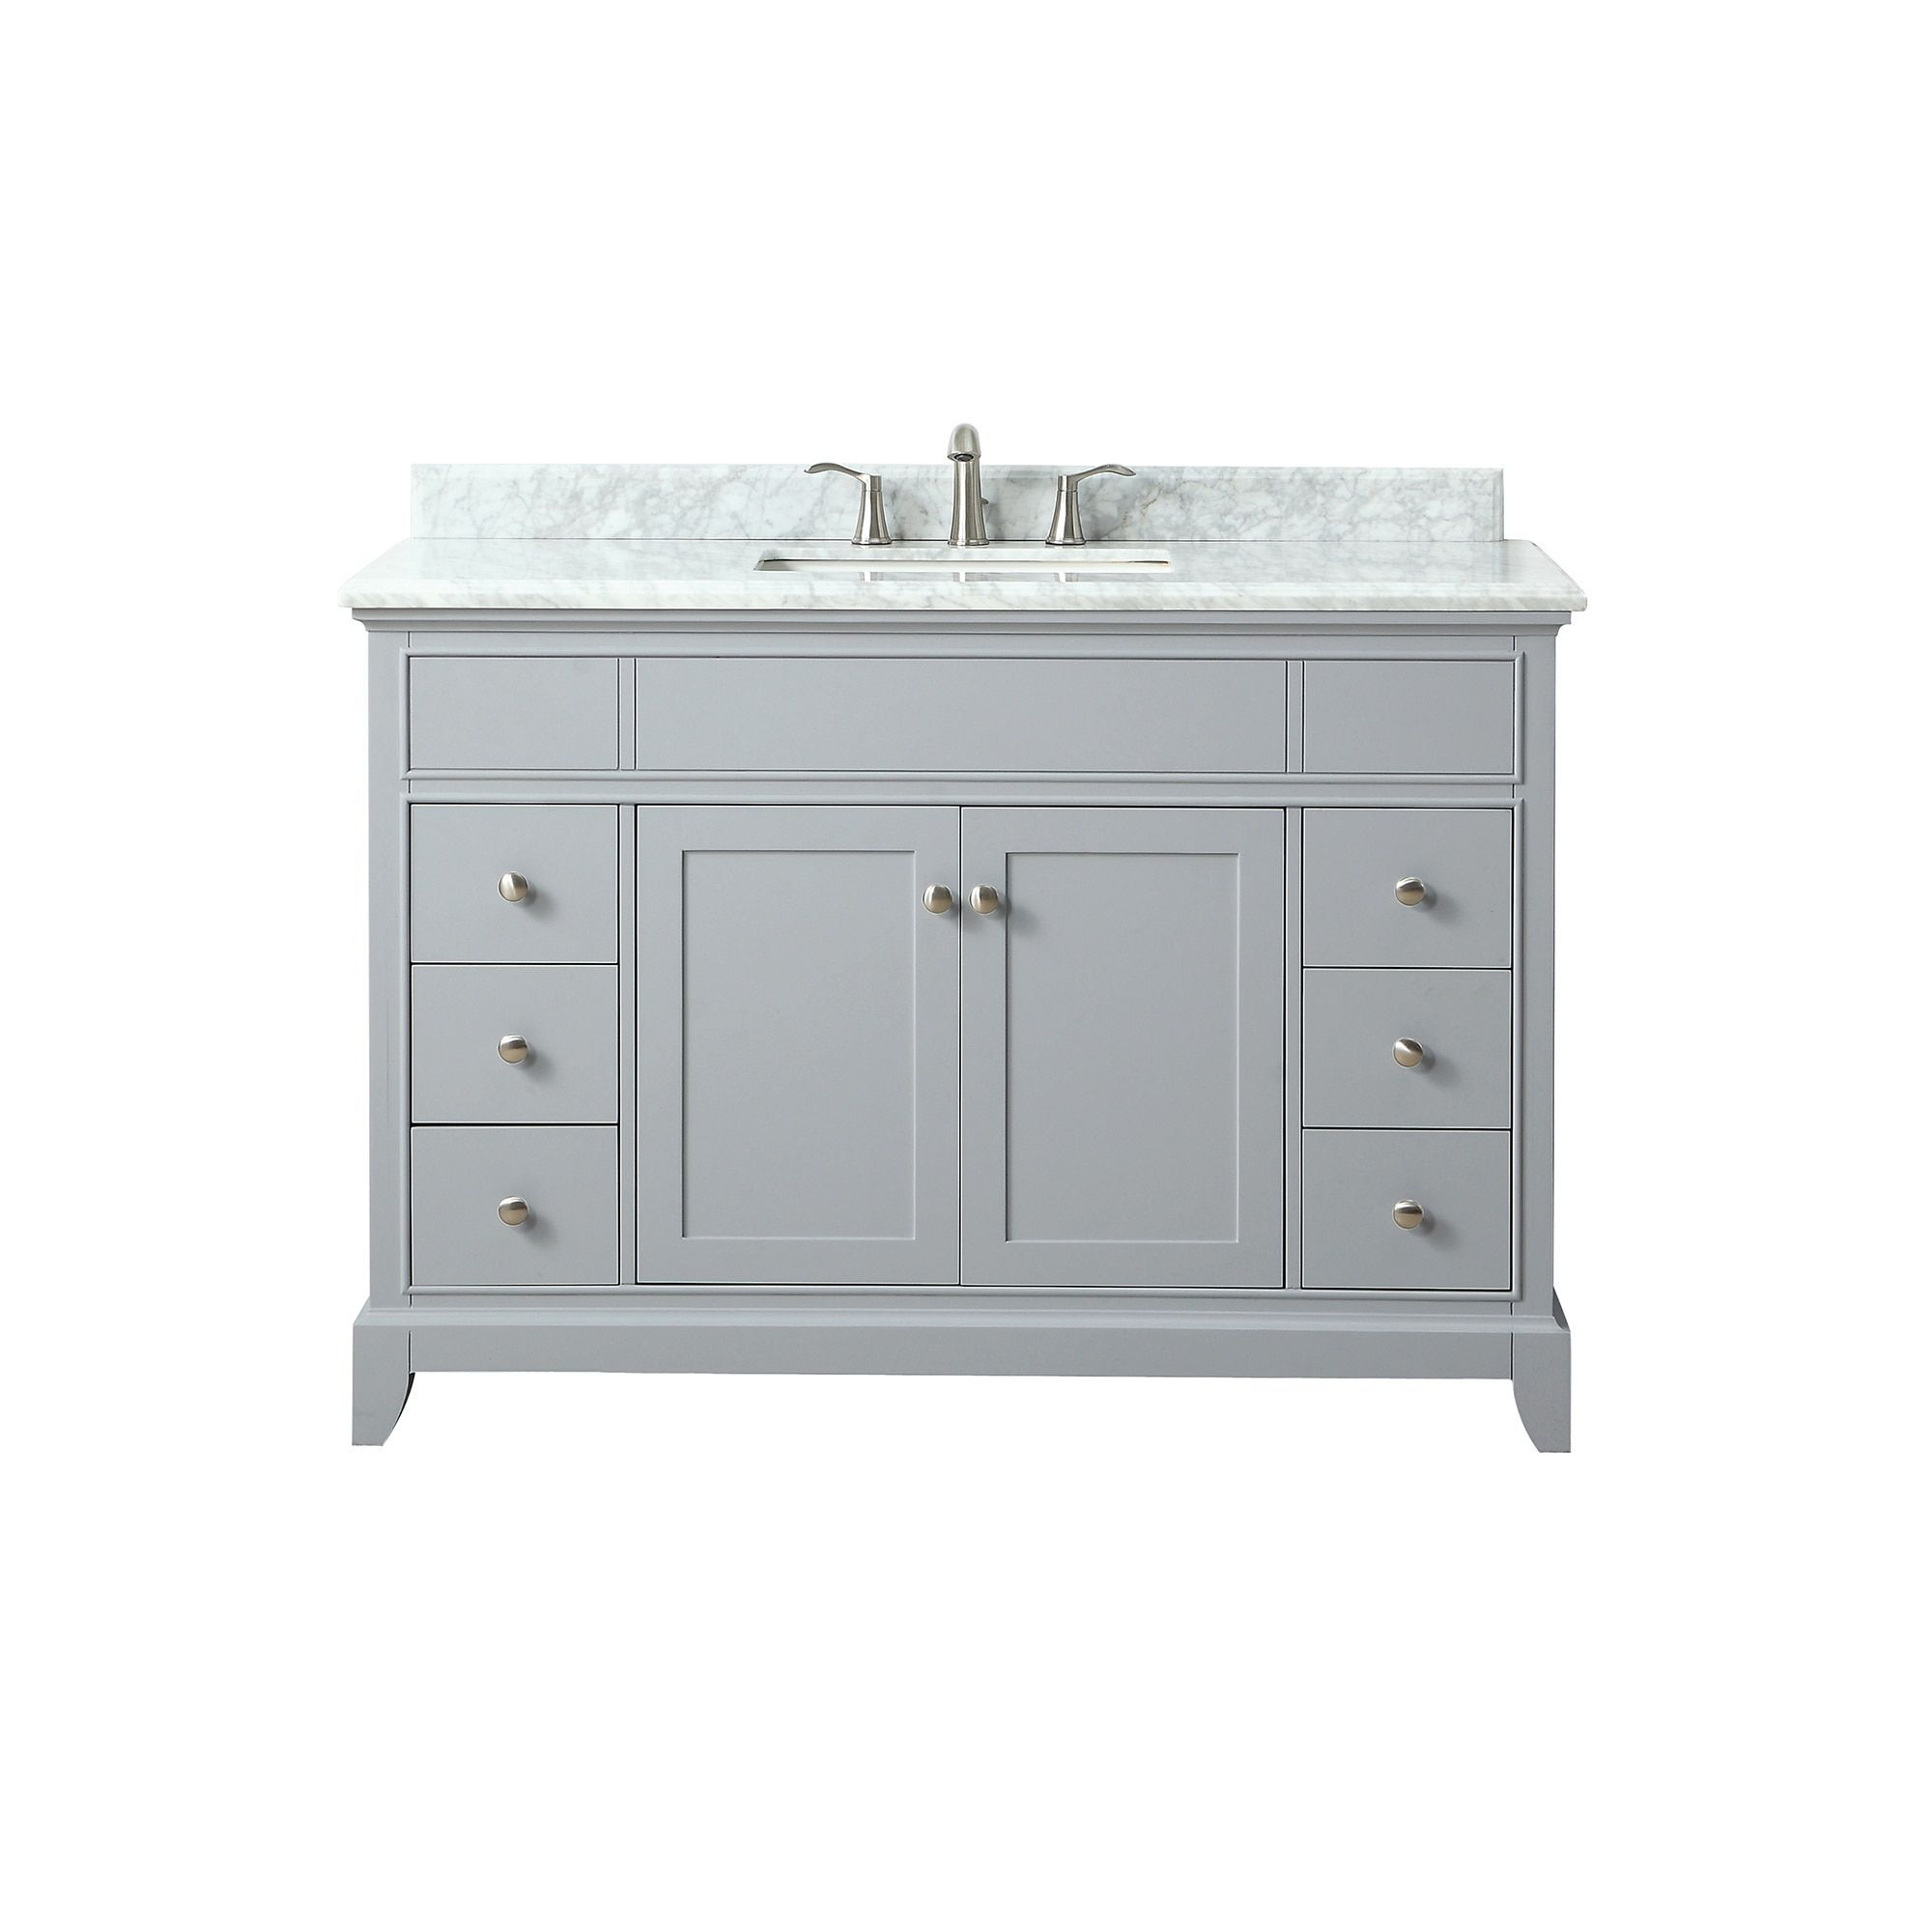 Azzuri Aurora 49 In Vanity In Light Gray Finish With Carrara